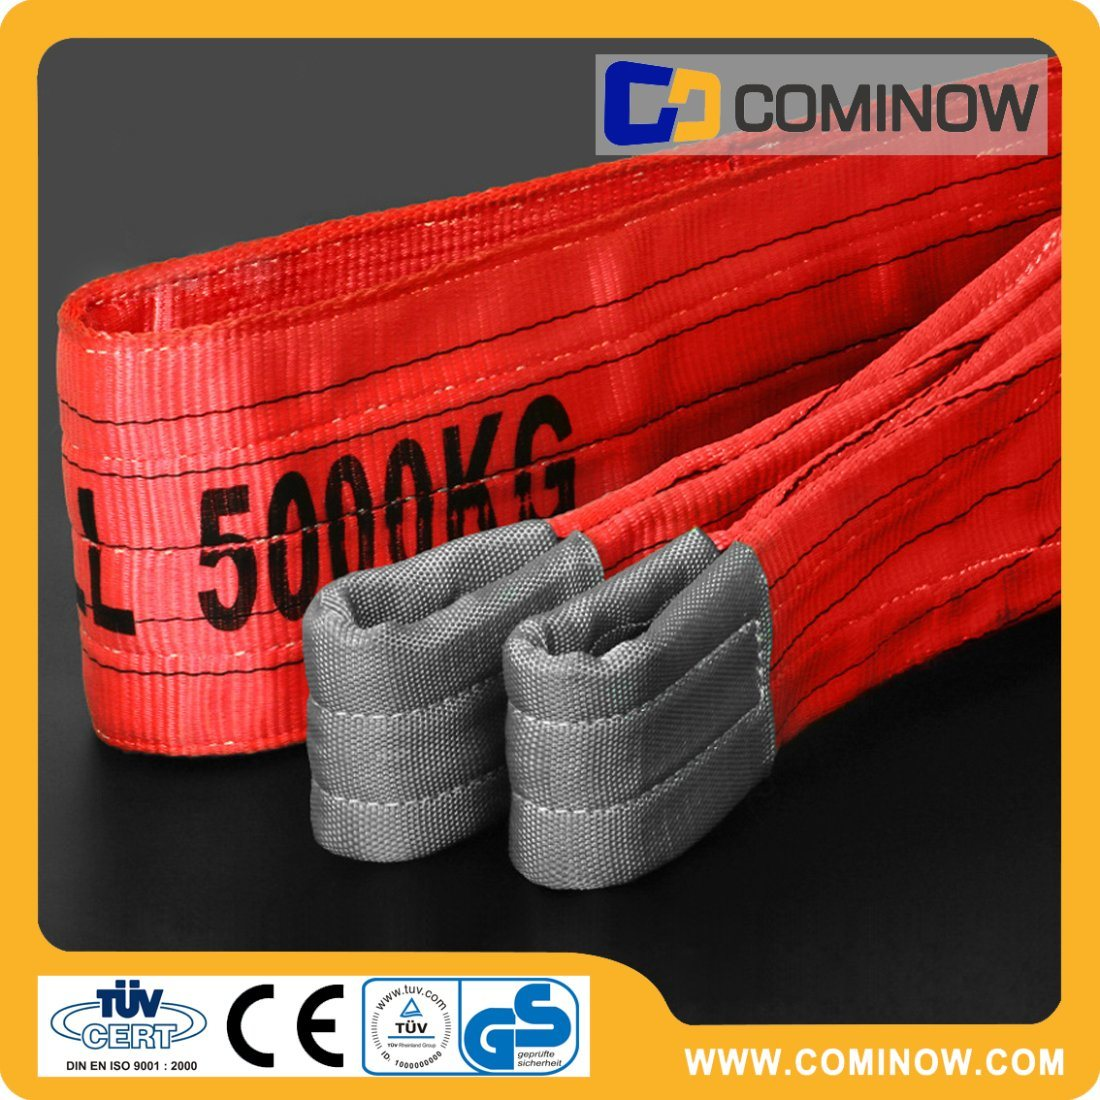 5 Tonne Polyester Flat Webbing Sling with Lifting Eyes